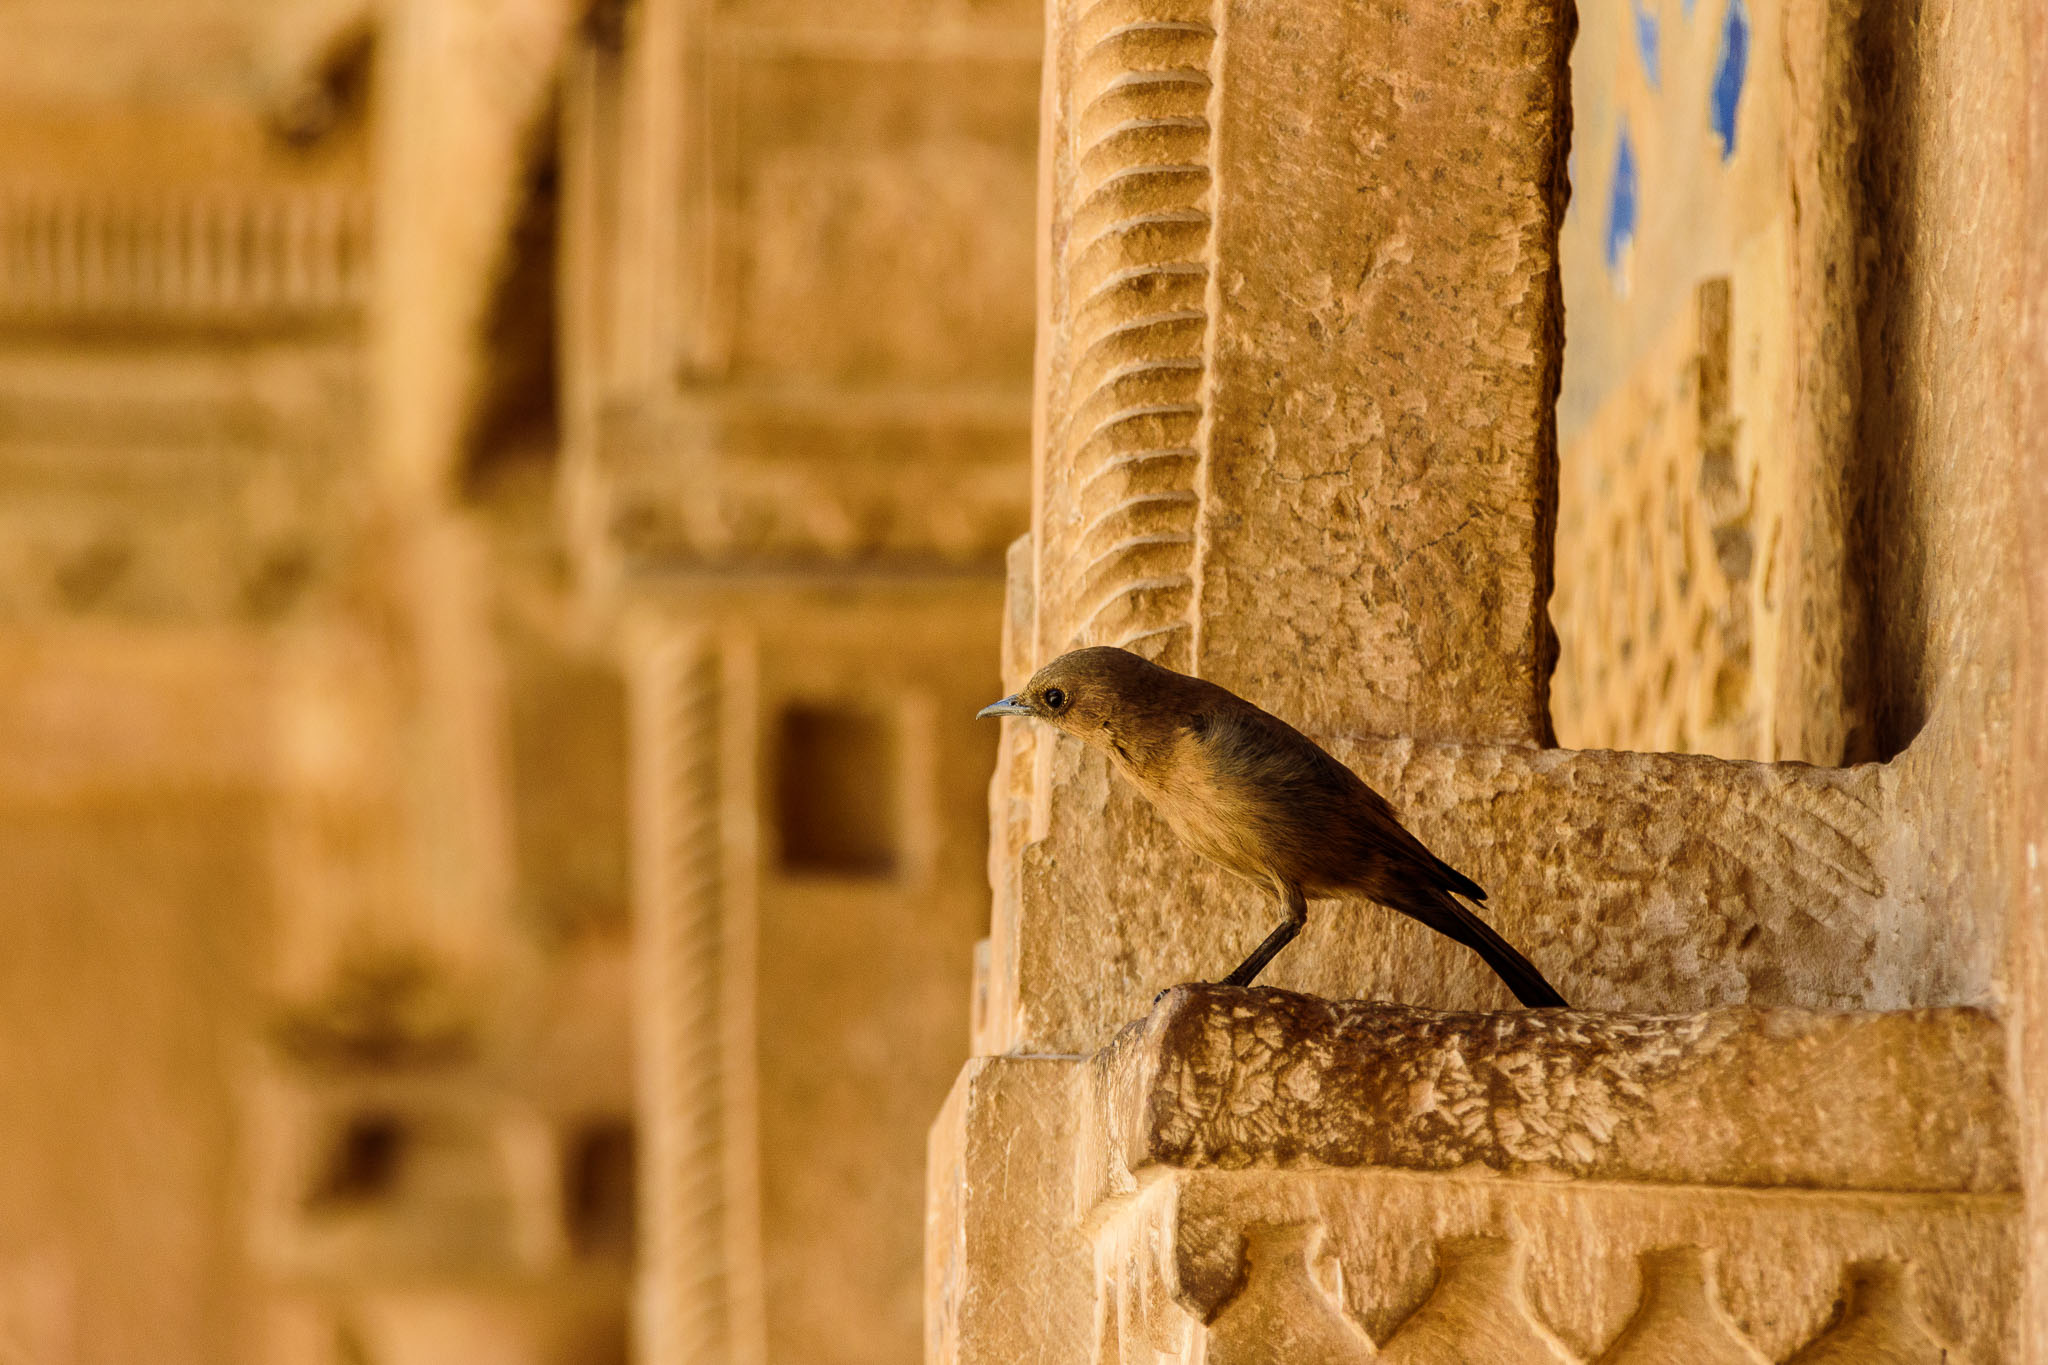 It is amazing where you will find wildlife sometimes. In the bare stone fort of Gwalior I came across this female Indian robin. I would have thought there wasn't much there for her but there was quite a lot of other birds living among the sterile looking stone walls. Obviously there was more to feed on than what was obviously visible to my eye.